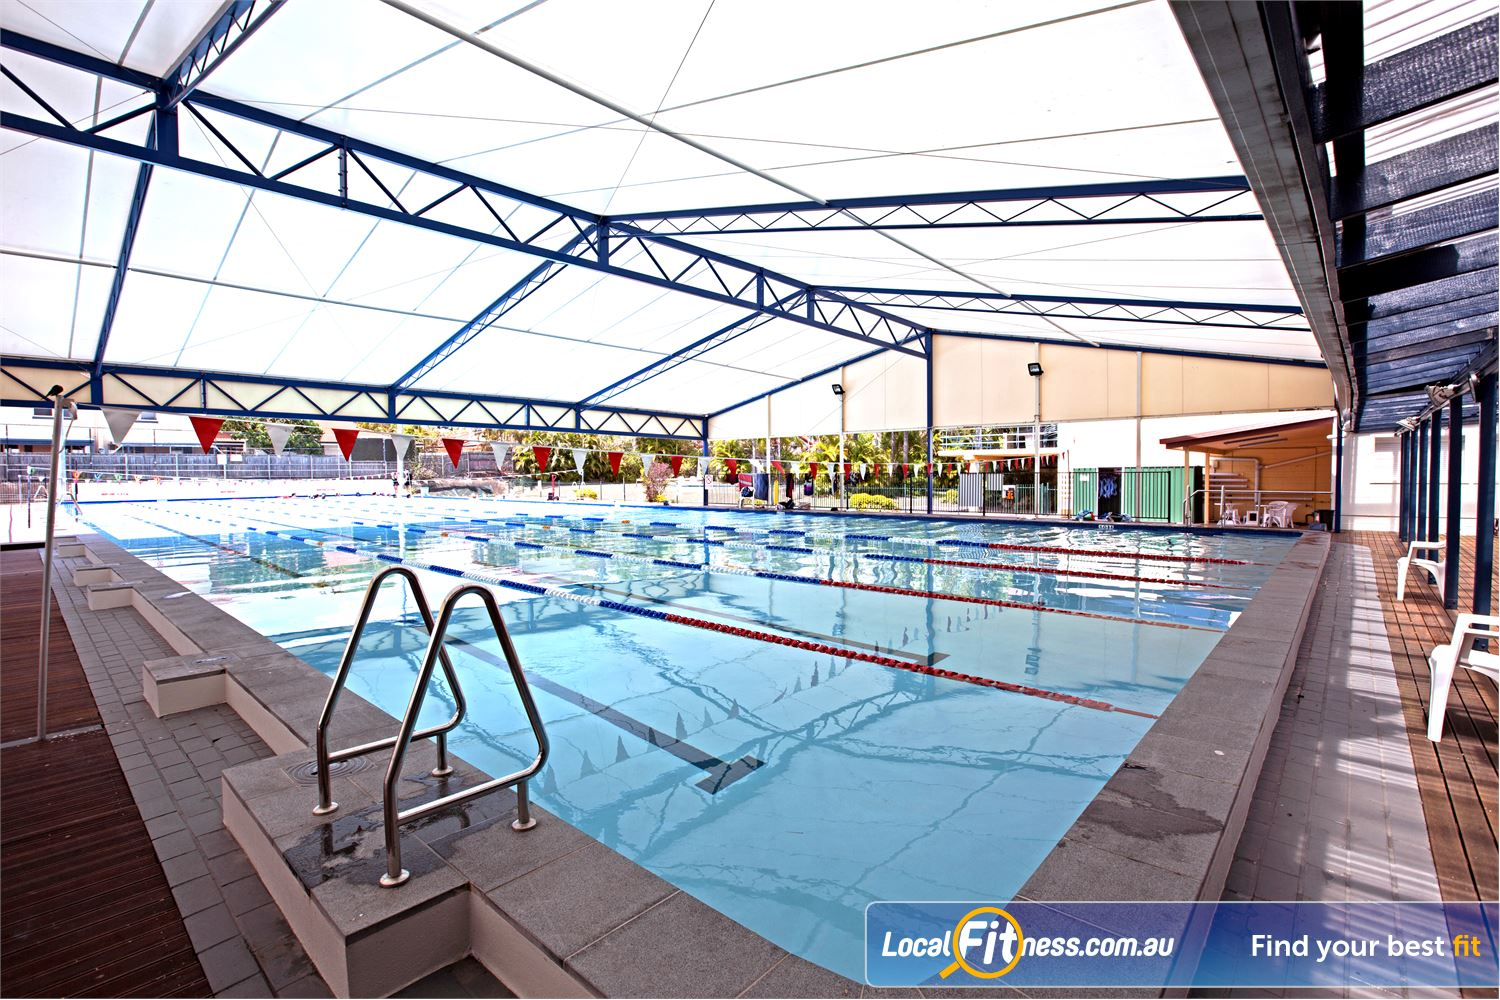 Goodlife Health Clubs Near Thornlands The indoor Alexander Hill swimming pool area.